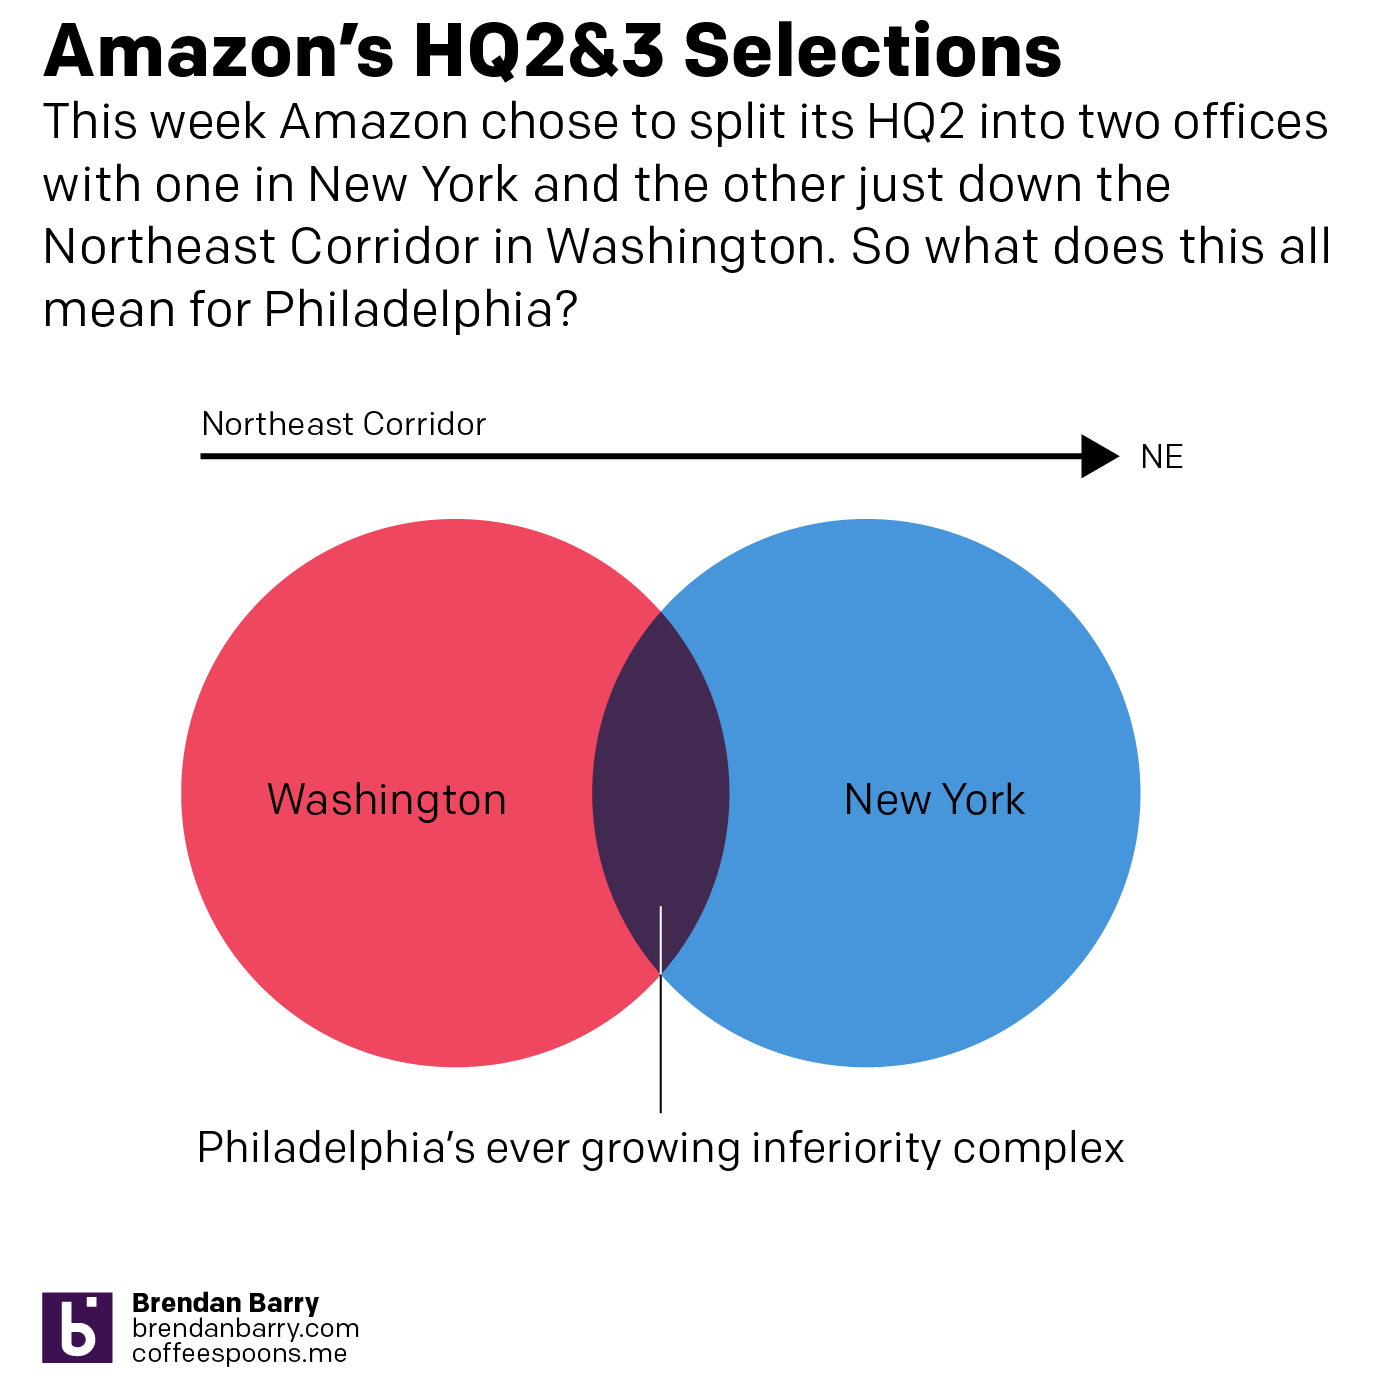 No Amazon in Philadelphia